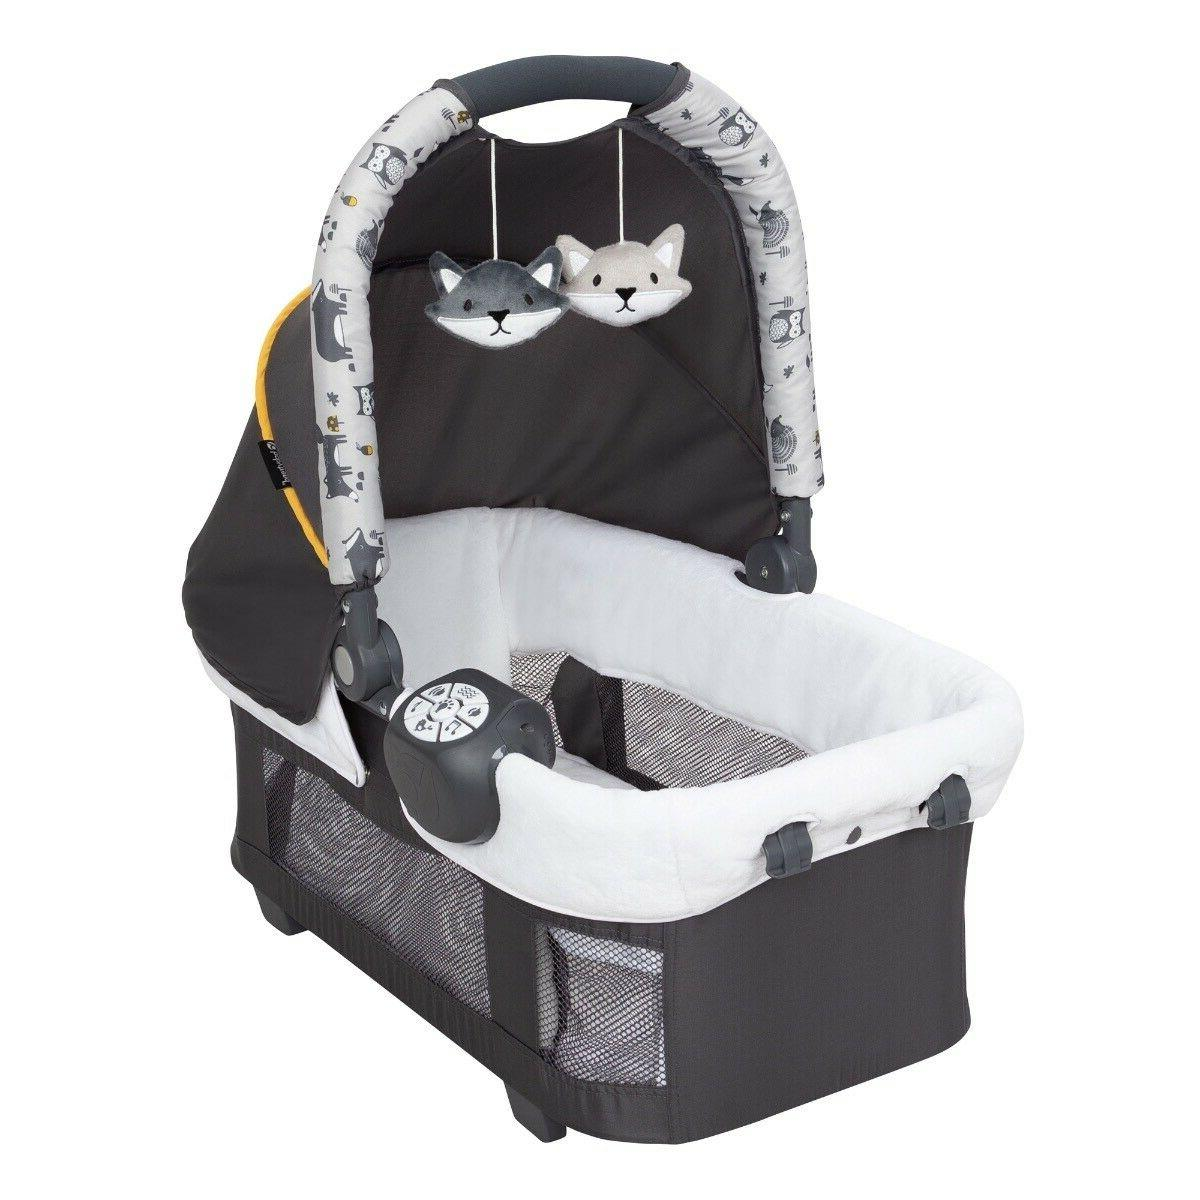 Baby Double Twins Center Thule